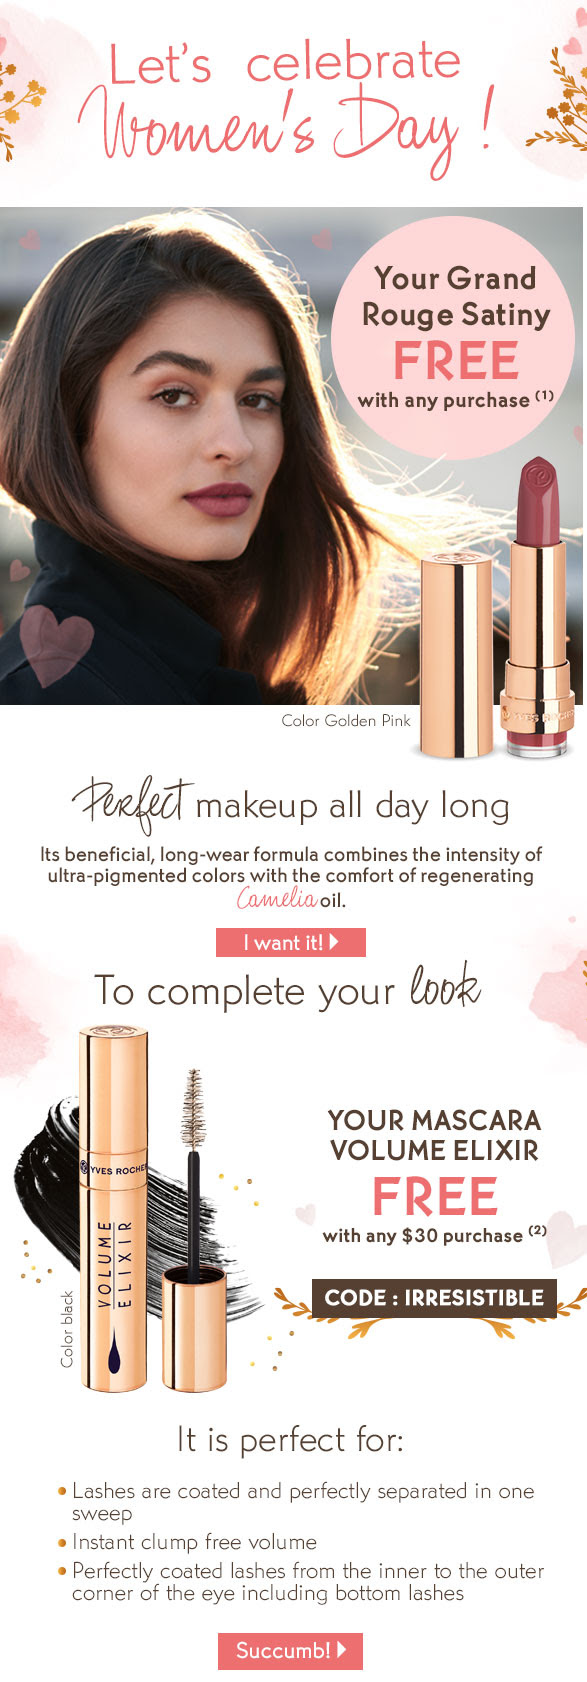 Yves Rocher Canada International Women's Day 2019 Free Rouge Satiny Lipstick GWP Offers Mascara Canadian Promo Code Coupon Code - GlossenseYves Rocher Canada International Women's Day 2019 Free Rouge Satiny Lipstick GWP Offers Mascara Canadian Promo Code Coupon Code - Glossense